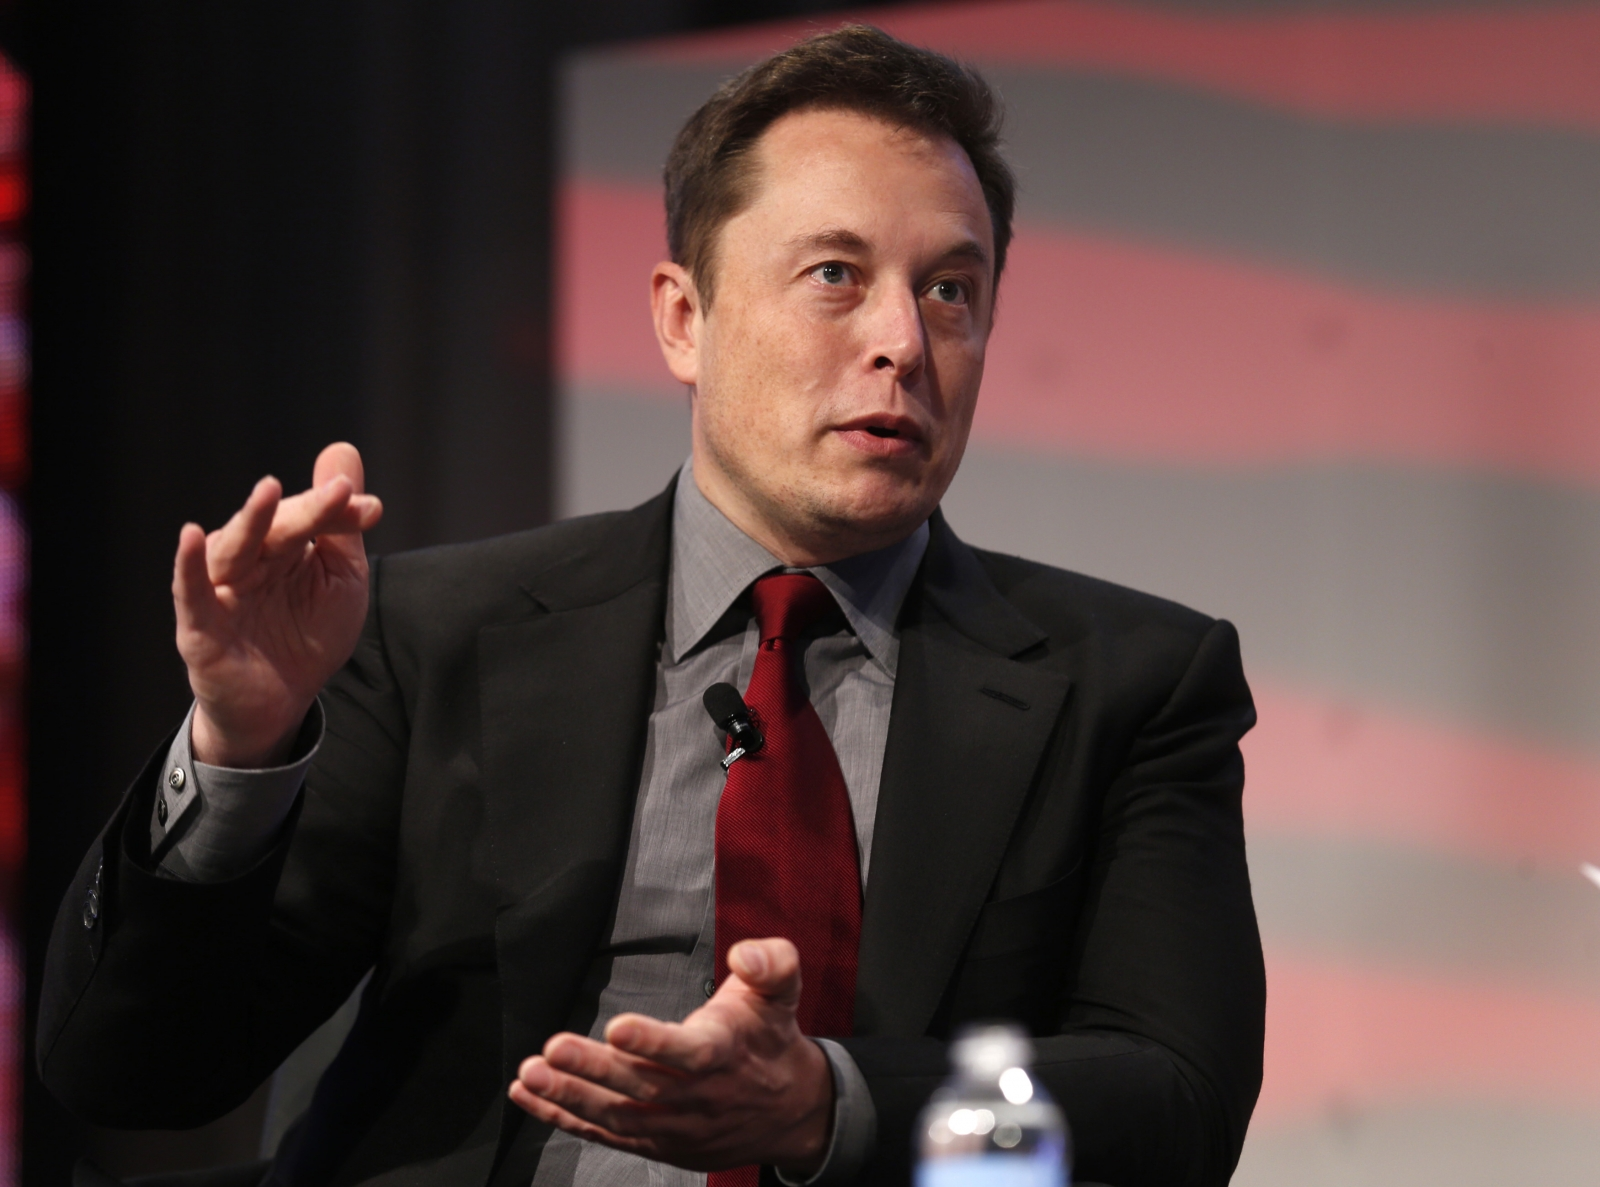 Elon Musk Tweet Adds 670m To Tesla Stock Market Valuation